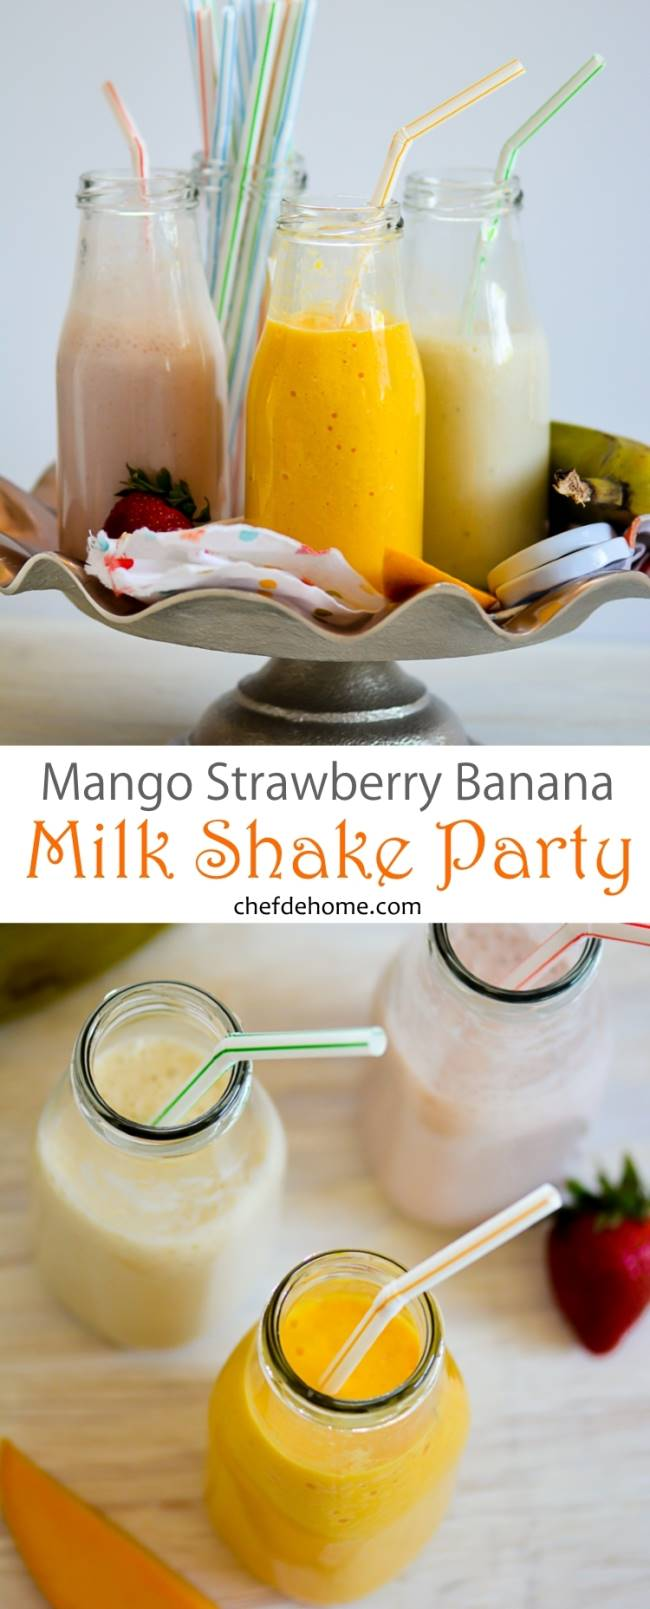 Mango Strawberry Banana Milk SHake for Kids Summer Party - chefdehome.com